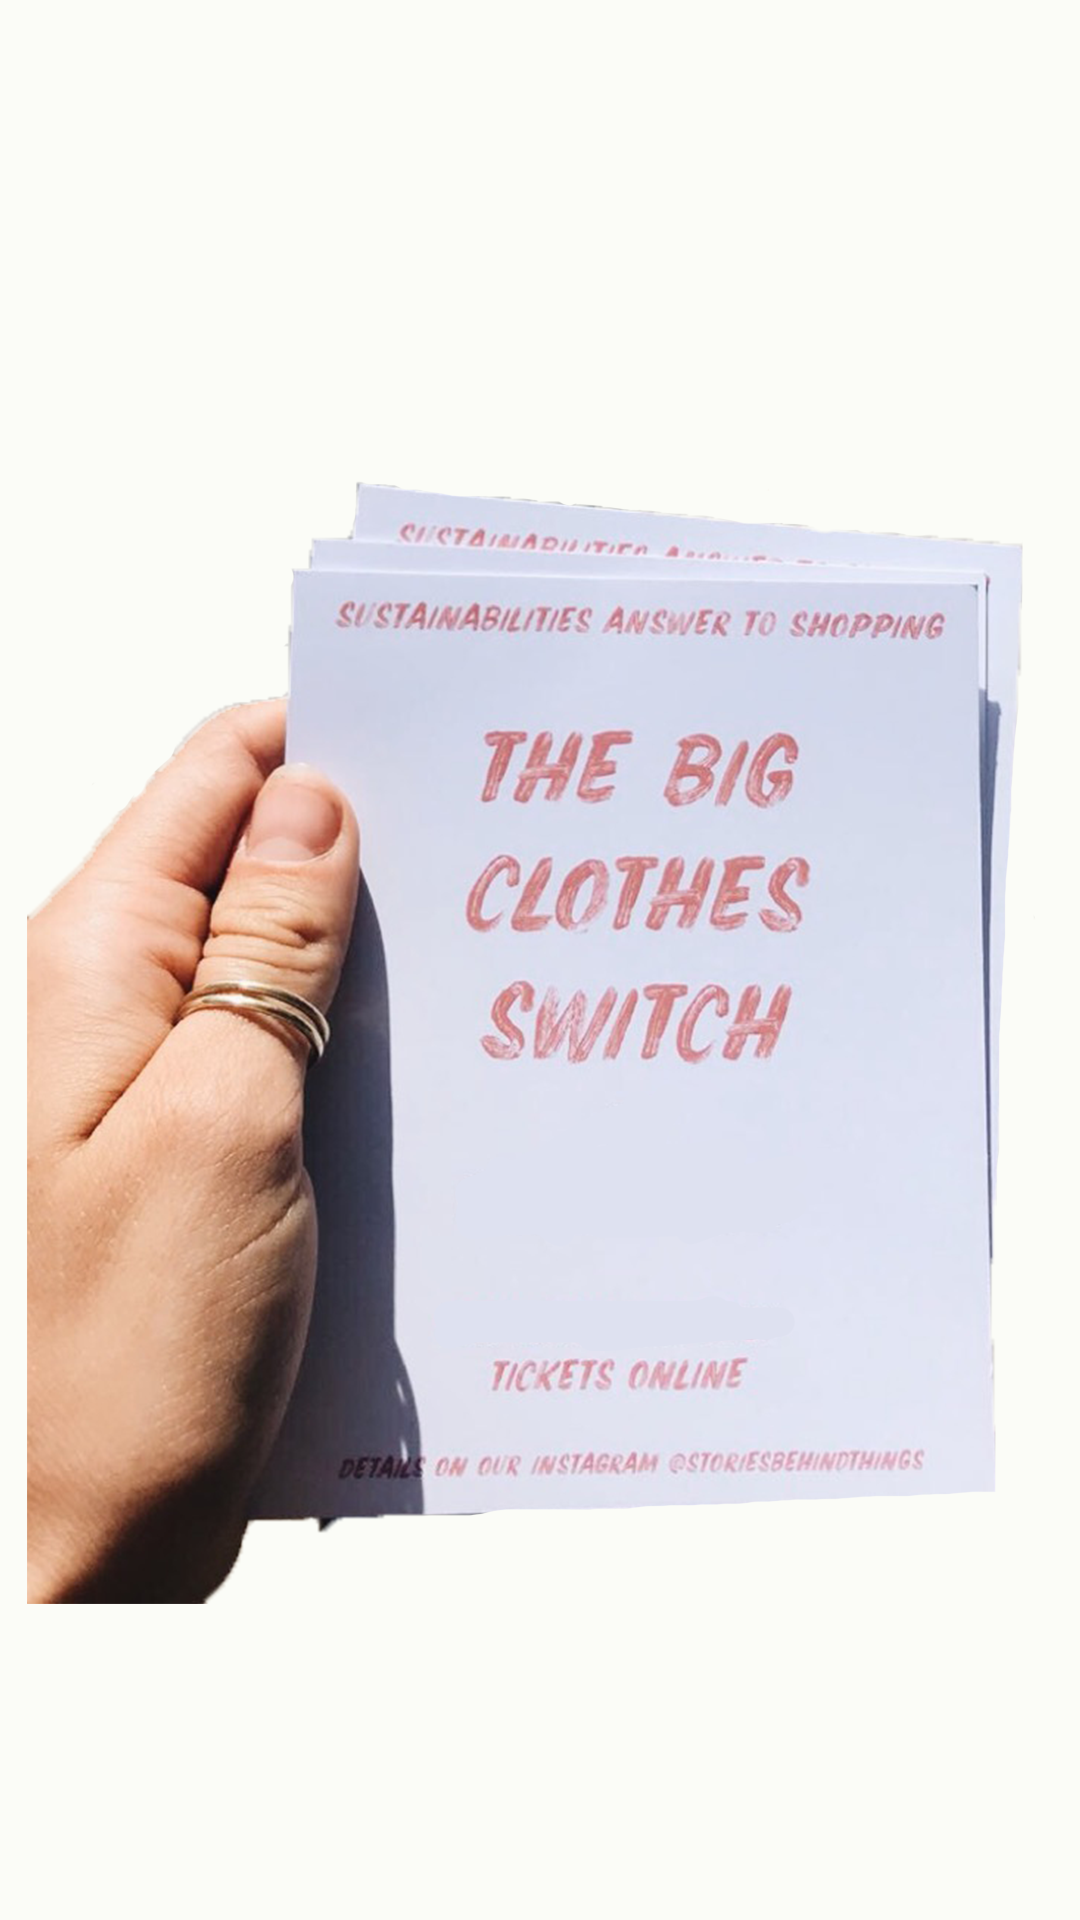 THE BIG CLOTHES SWITCH - the short: a clothes switching event to redefine newness and grow the sharing economy.